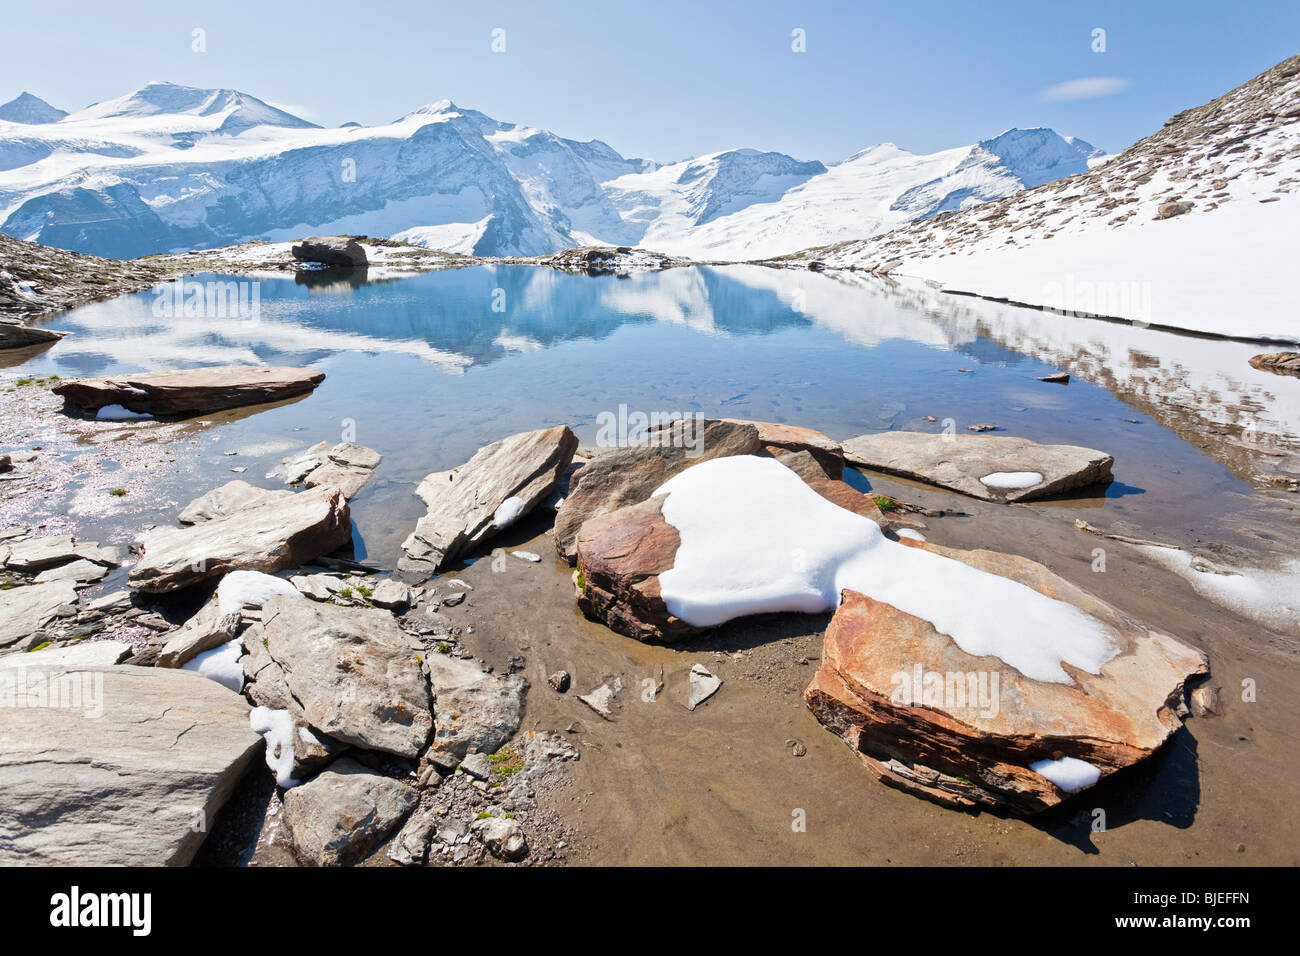 Small mountain lake, Hohe Tauern in the background, Zell am See, Austria Stock Photo